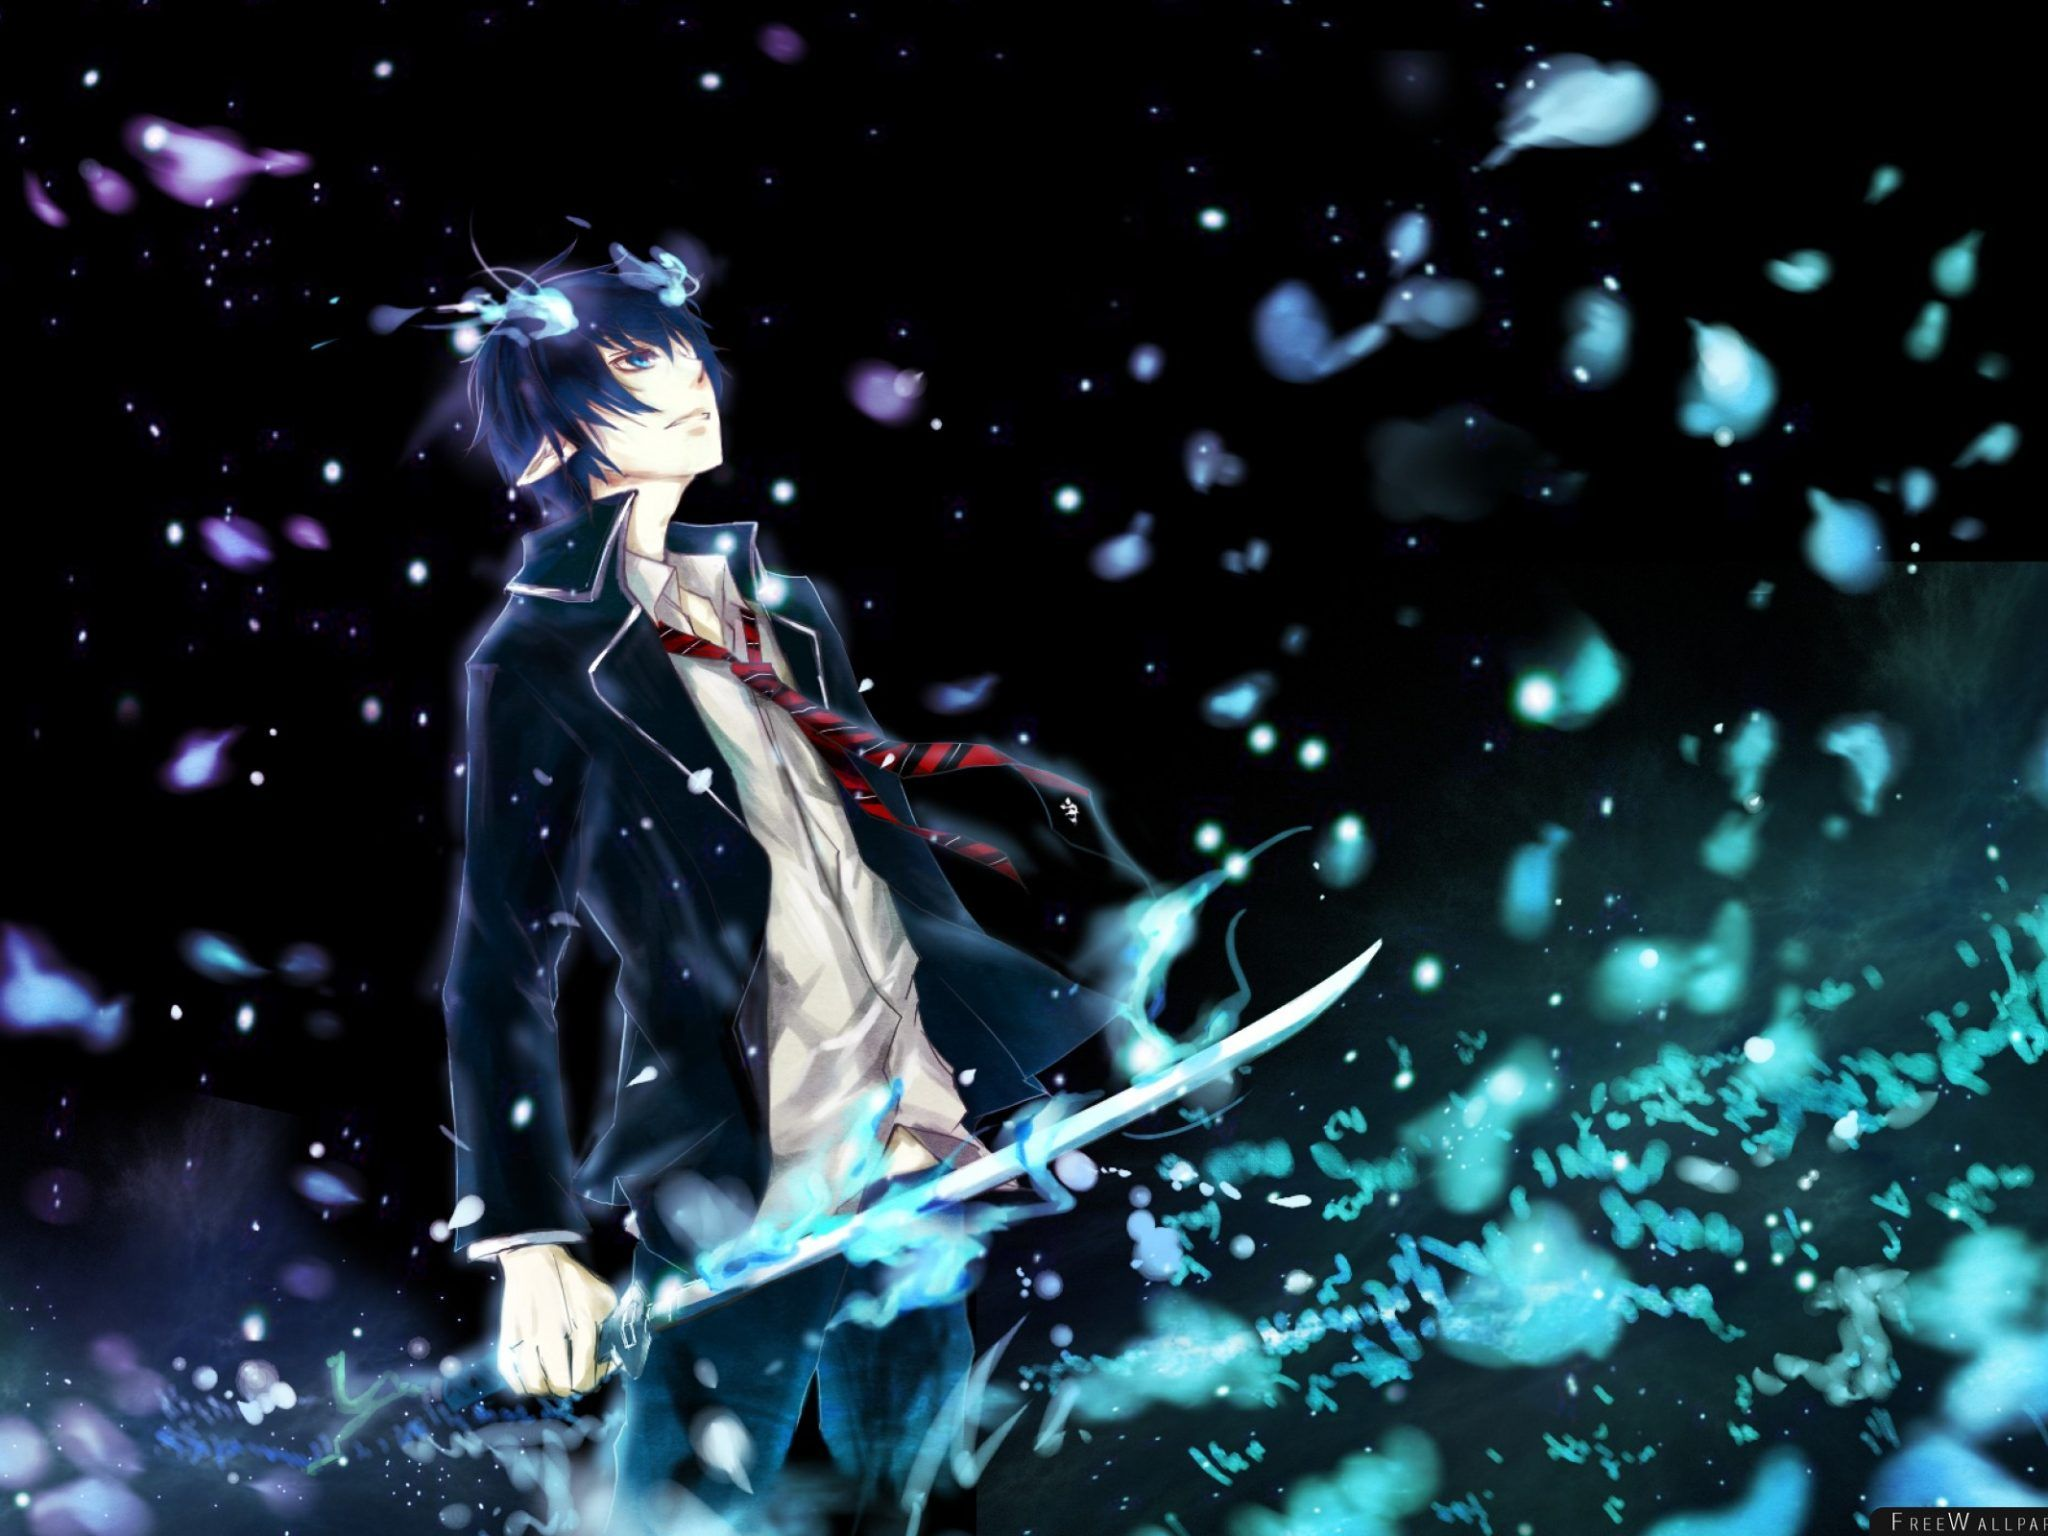 Pin By Tacumi Oga On Ao No Exorcist Blue Exorcist Ao No Exorcist Blue Exorcist Rin